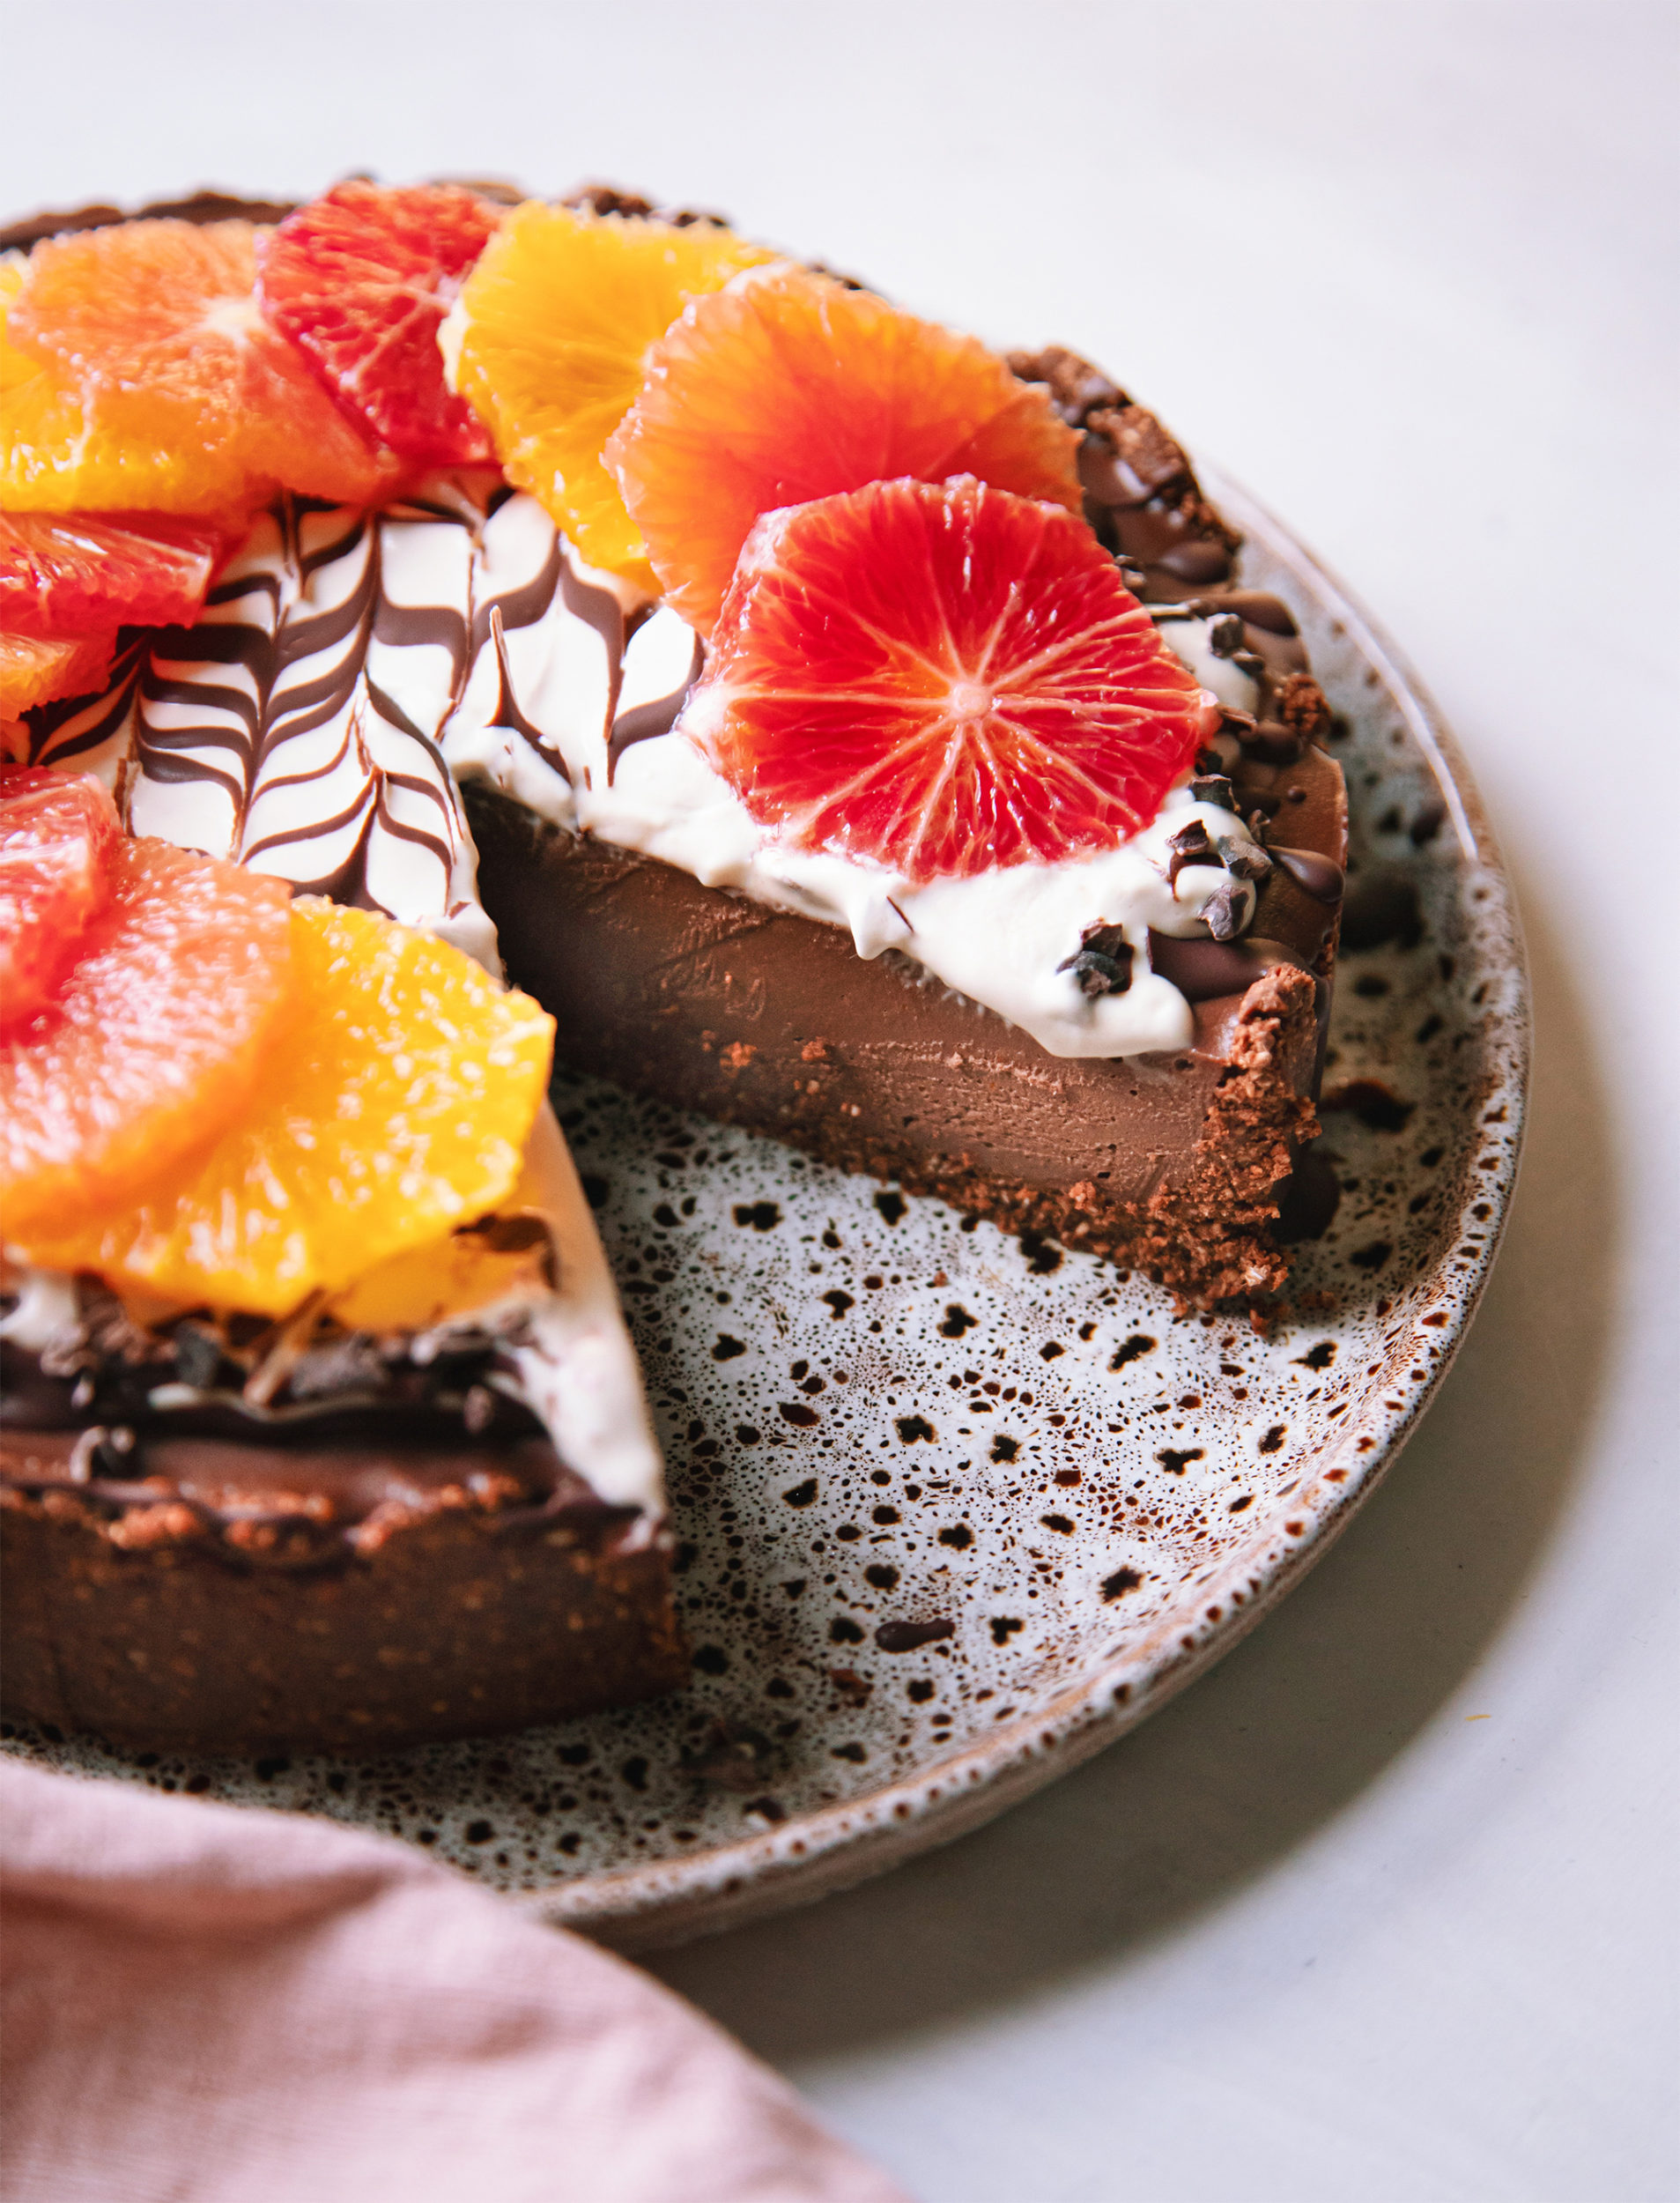 A side angle shot of a vegan chocolate orange cheesecake with a slice removed, showing the chocolaty truffle-like texture of the cake. The top of the cheesecake is decorated with different coloured orange slices and a bright white cashew cream marbled with melted chocolate.